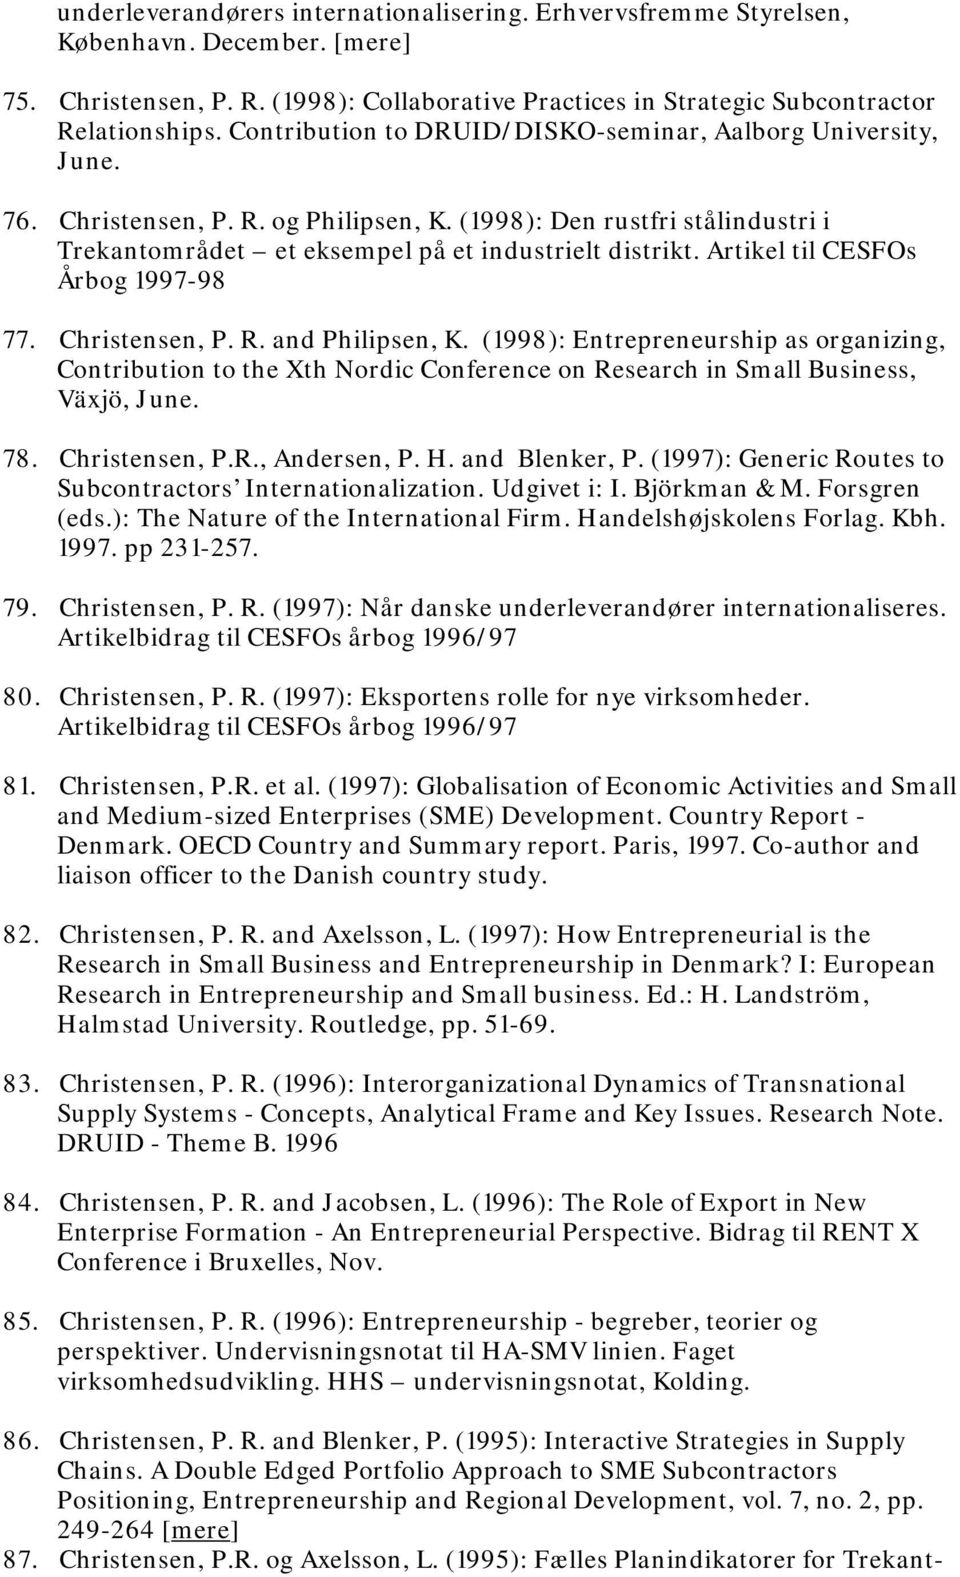 Artikel til CESFOs Årbog 1997-98 77. Christensen, P. R. and Philipsen, K. (1998): Entrepreneurship as organizing, Contribution to the Xth Nordic Conference on Research in Small Business, Växjö, June.